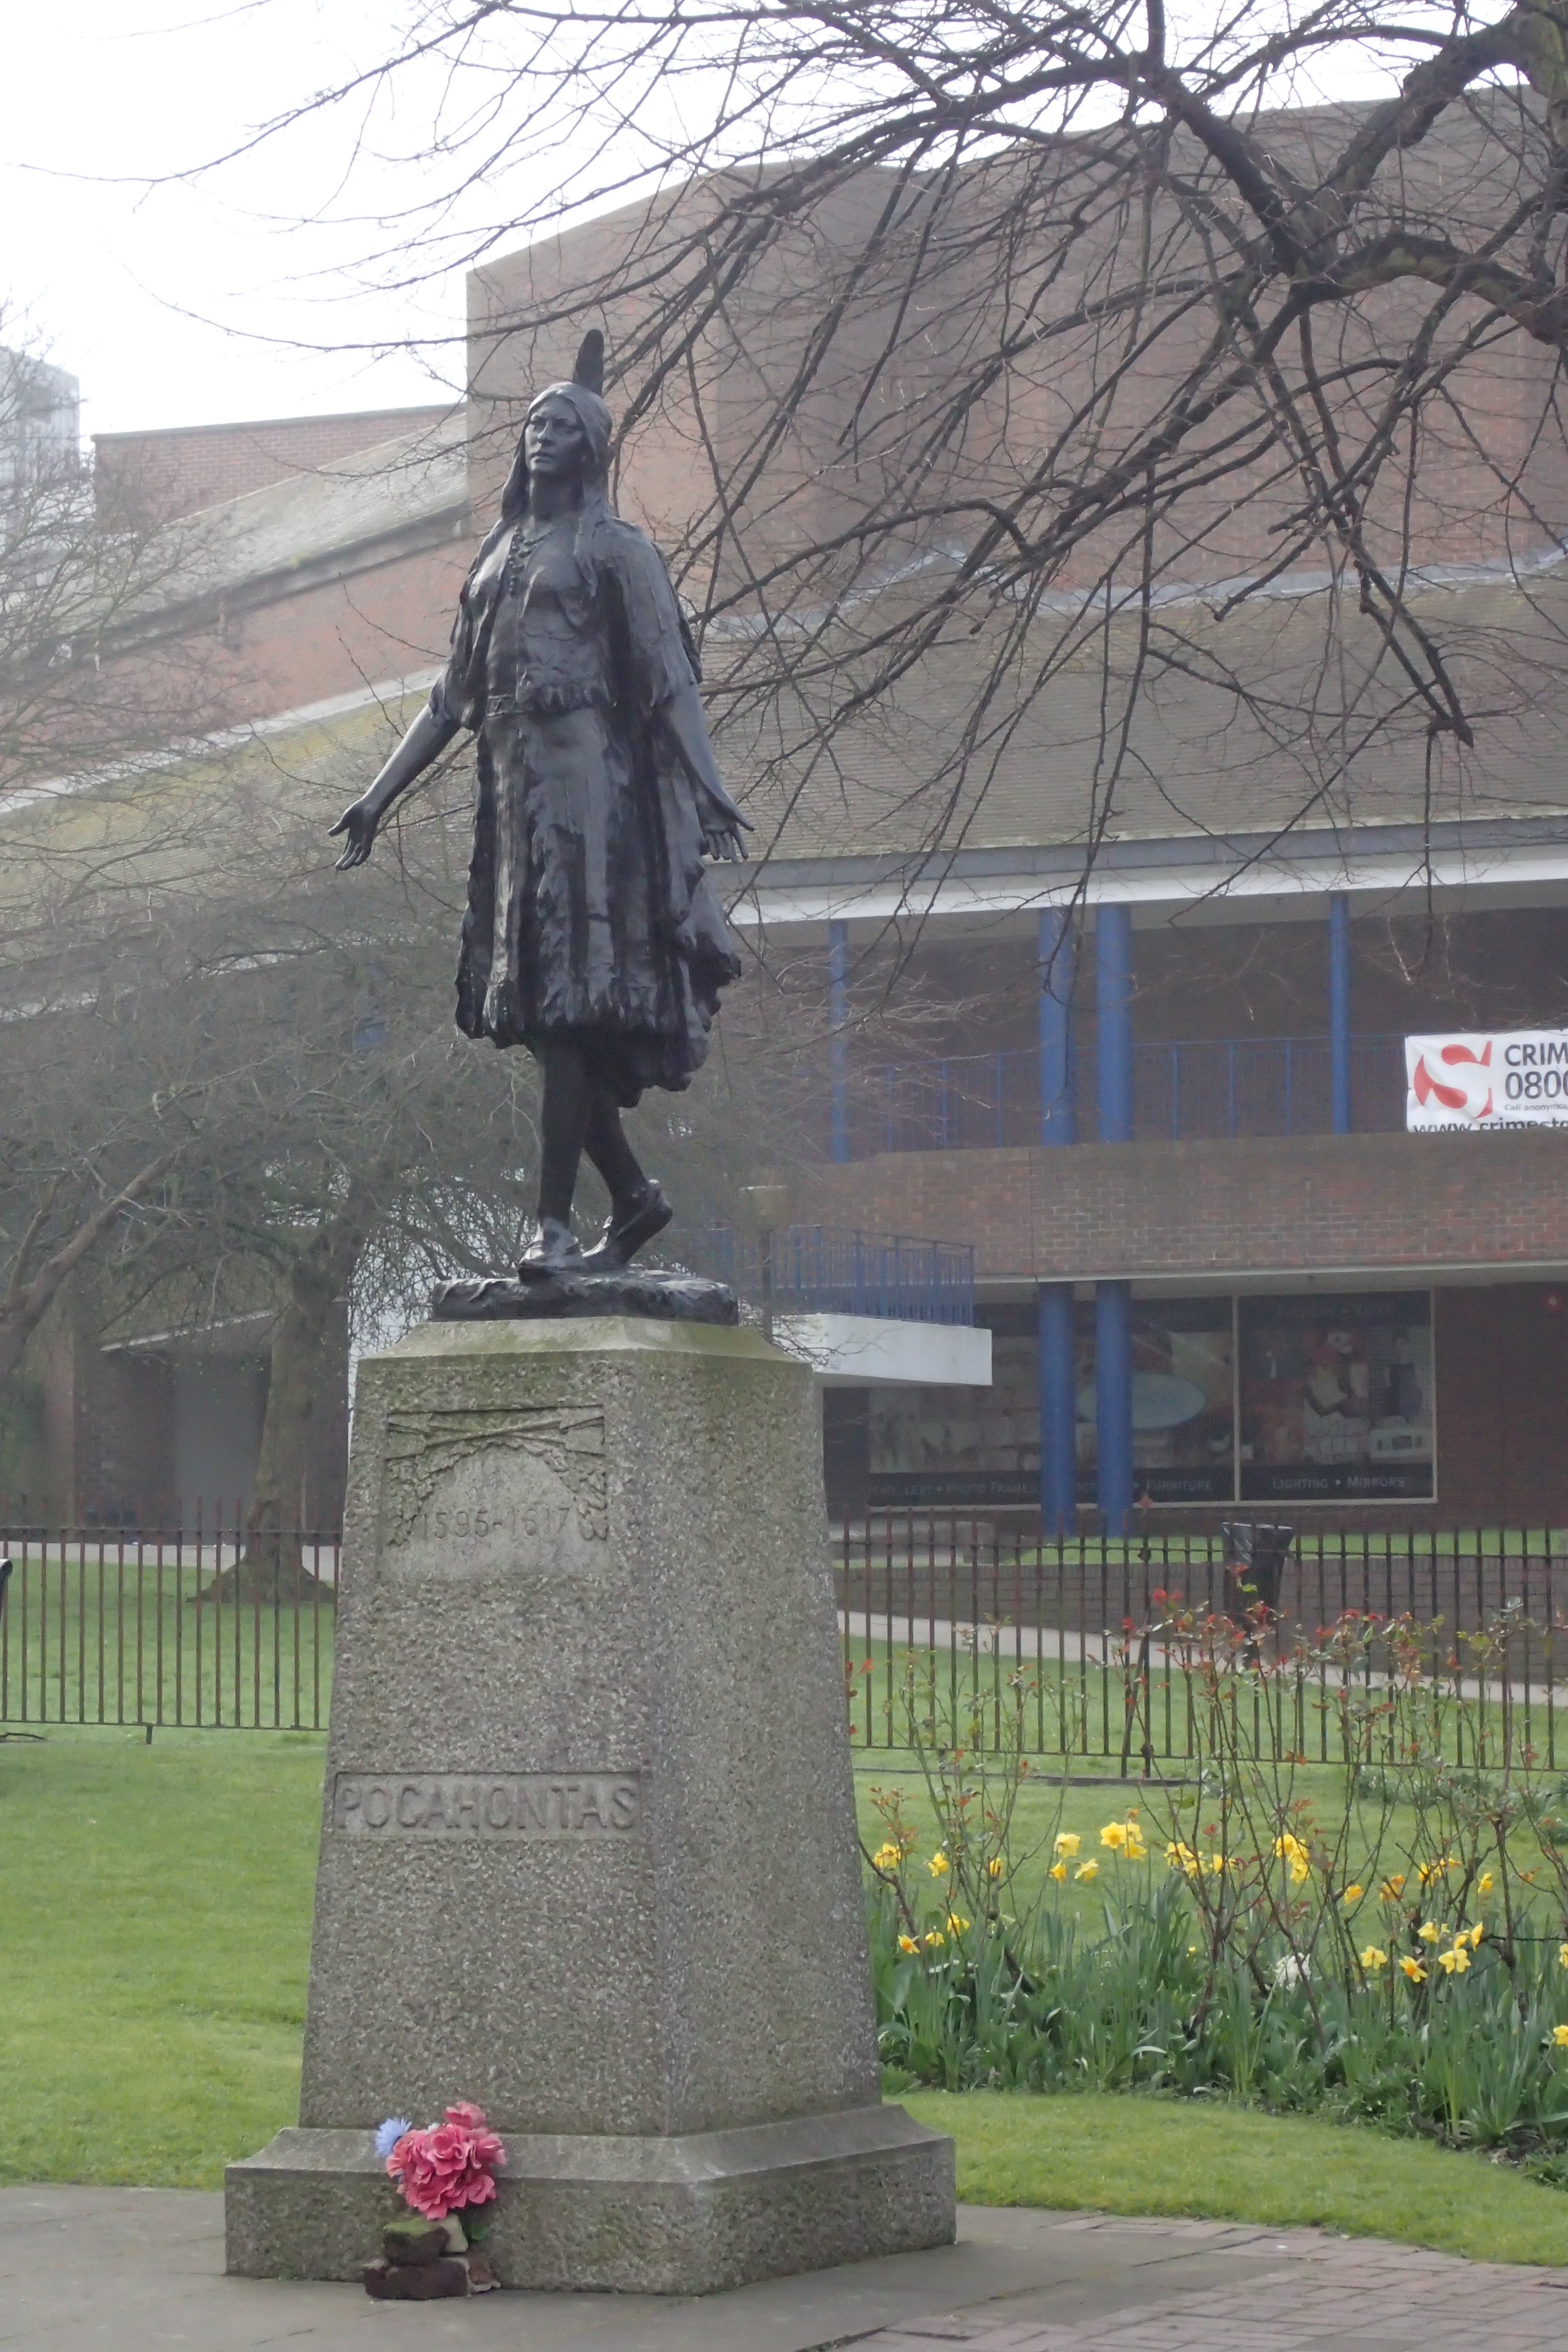 The statue of native American Pocahontas and her memorial are seen on the final day on trail at St. George's Church, Gravesend